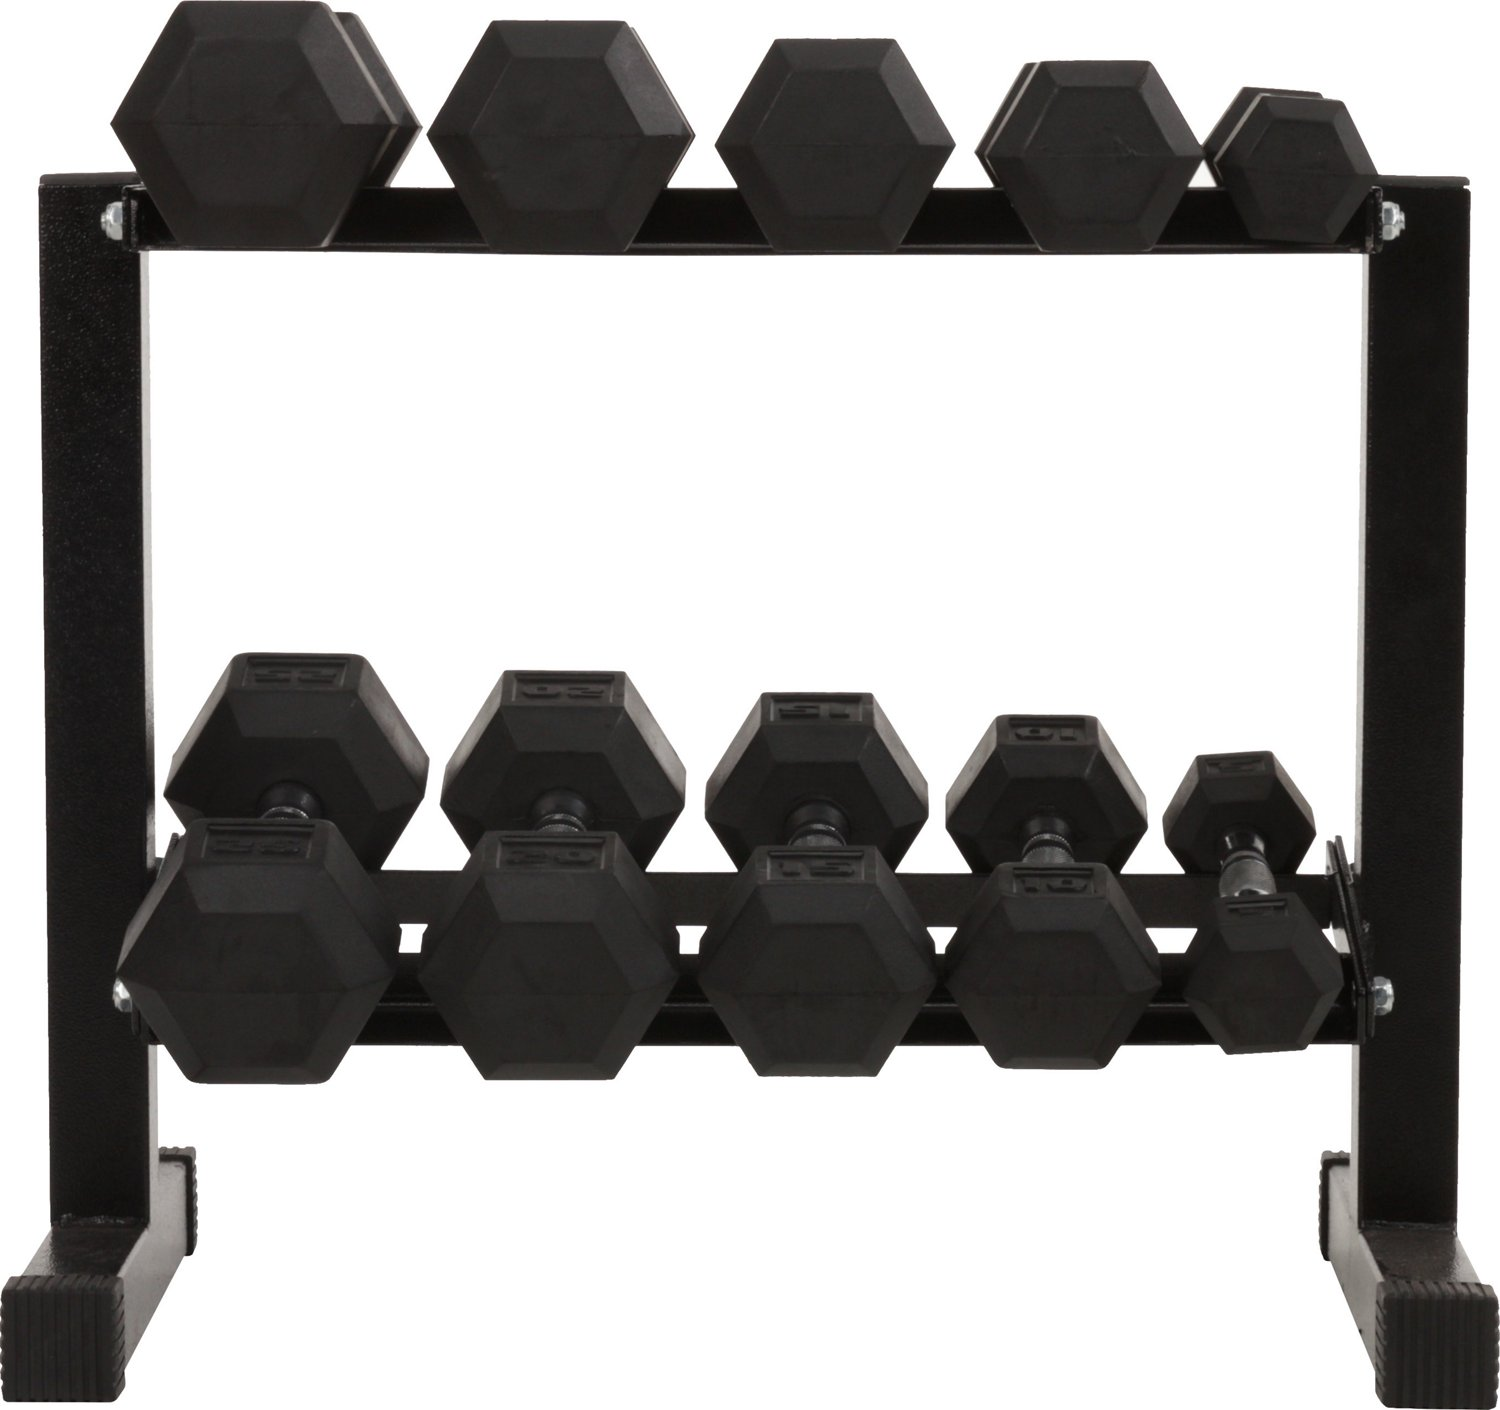 6e8467e2af0 Display product reviews for BCG 150 lbs Rubber Hex Dumbbell Set